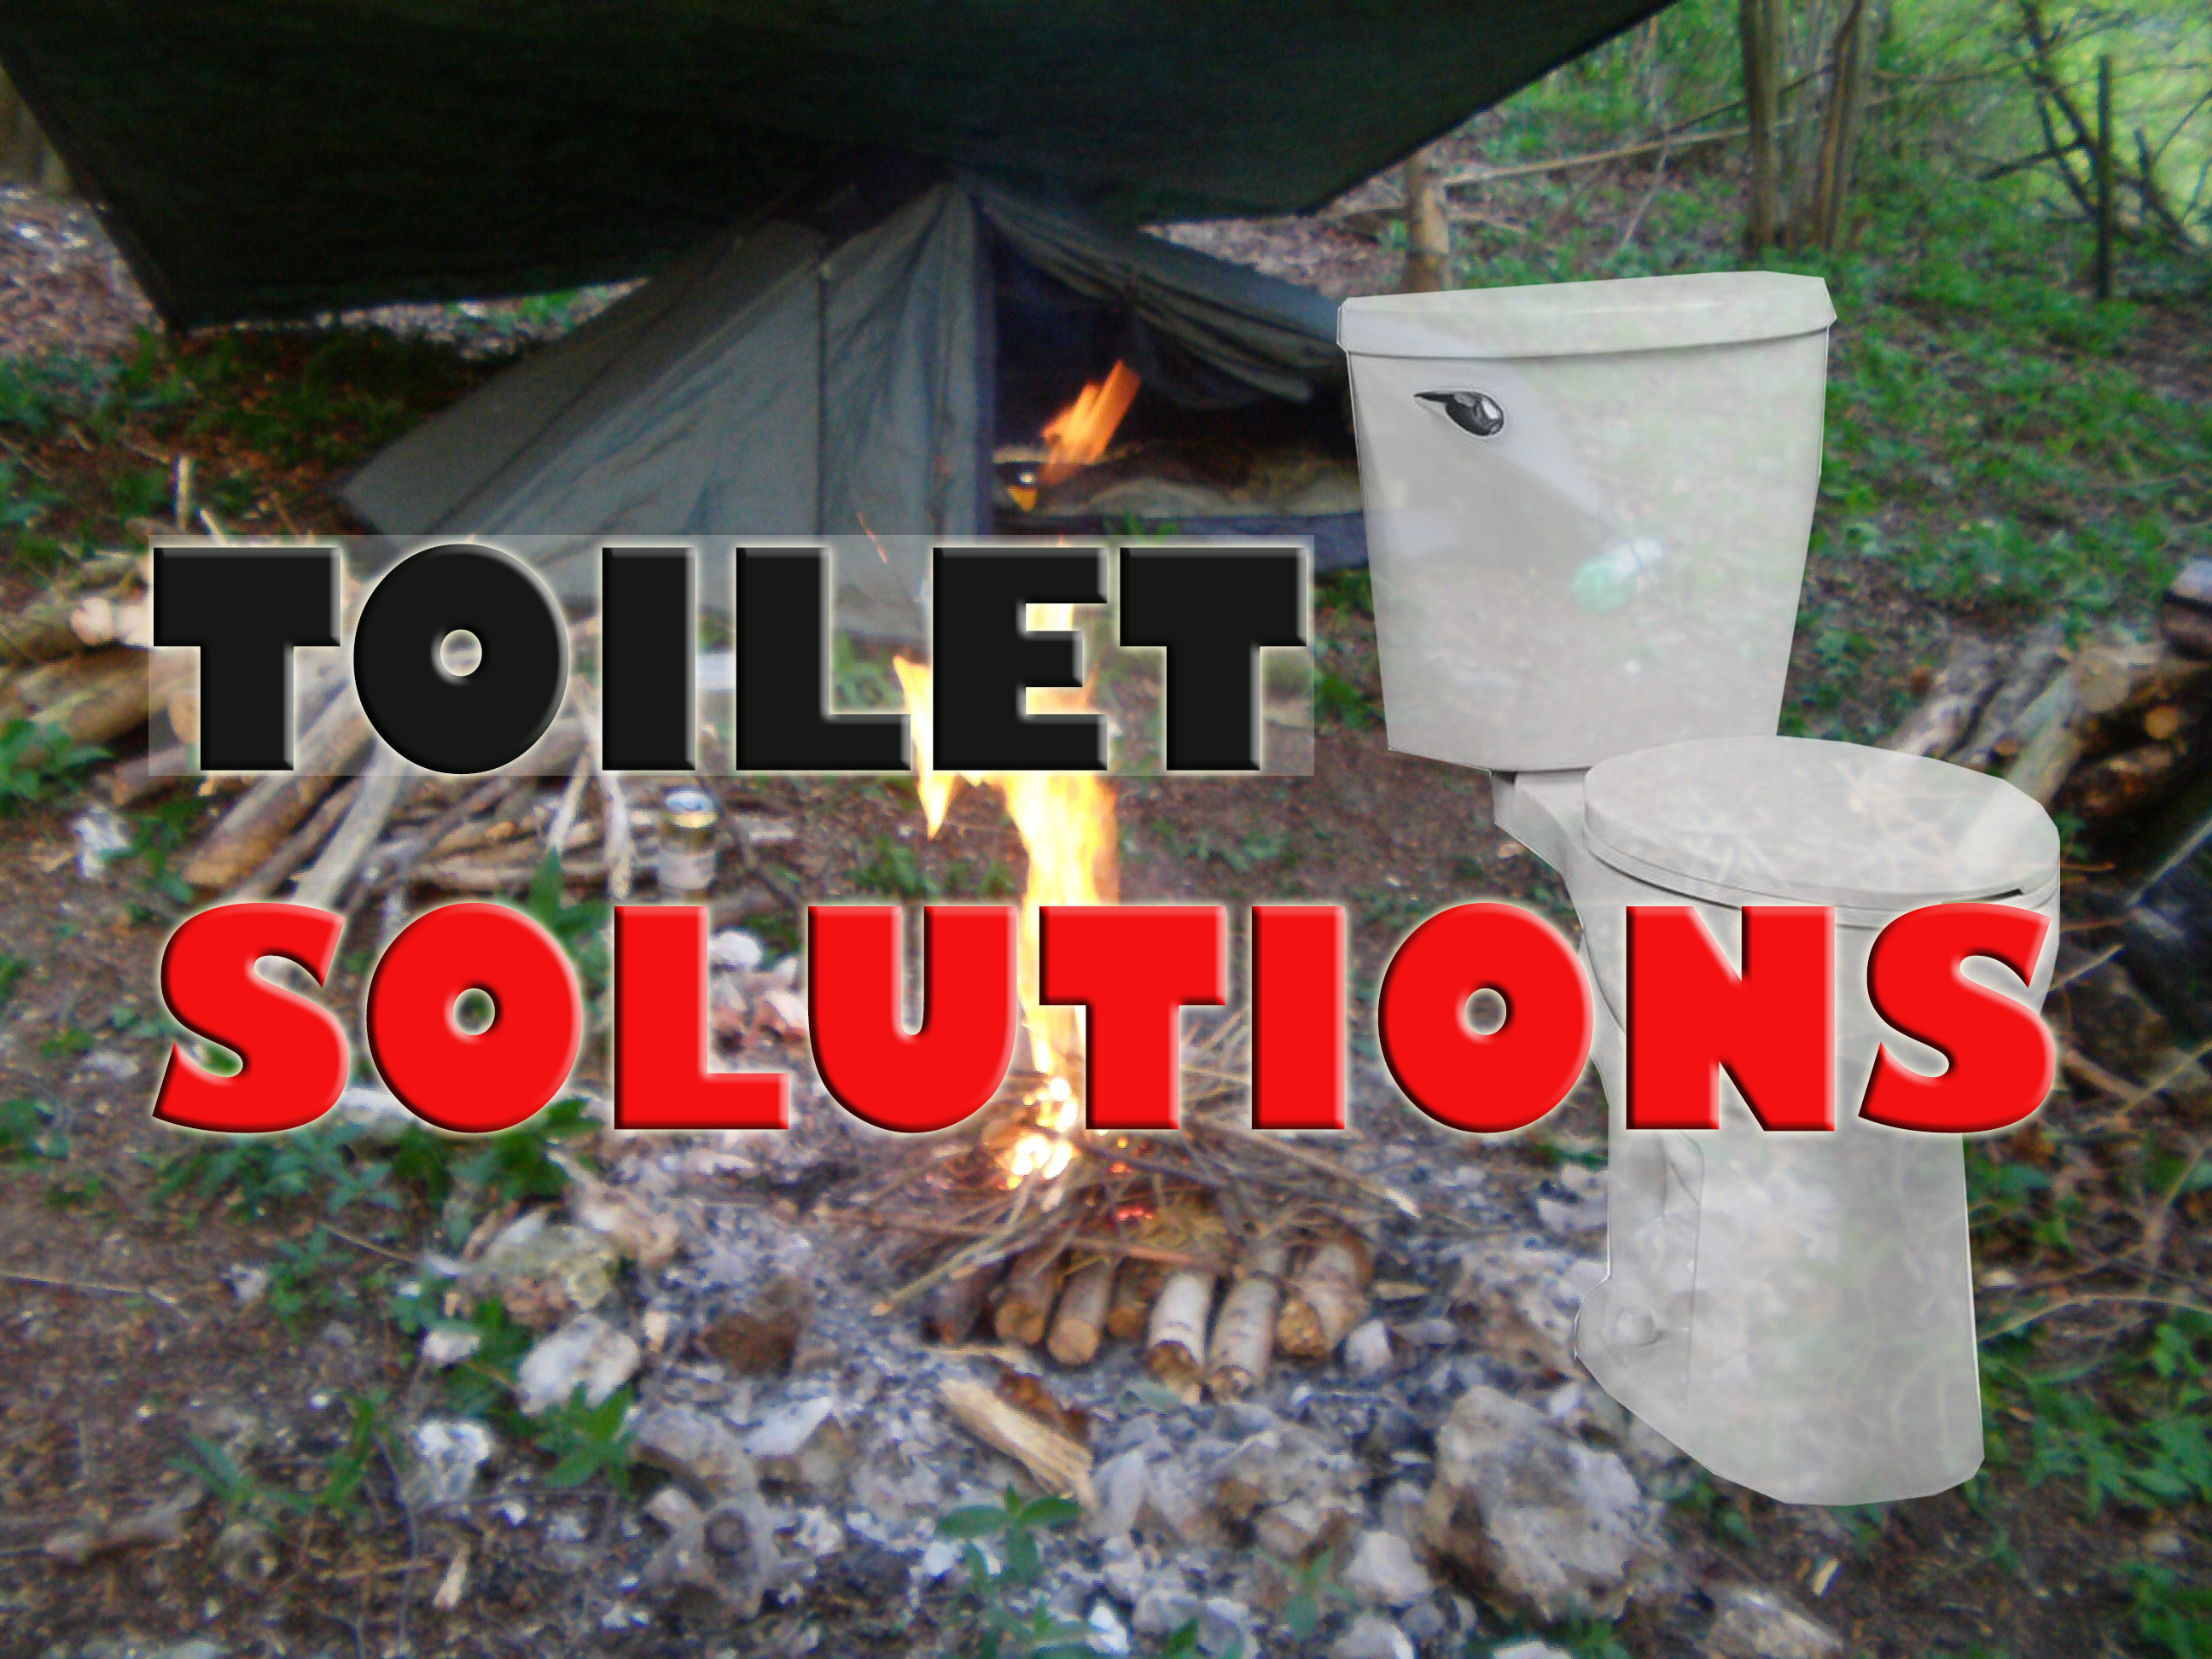 Toilet soloutions for camping